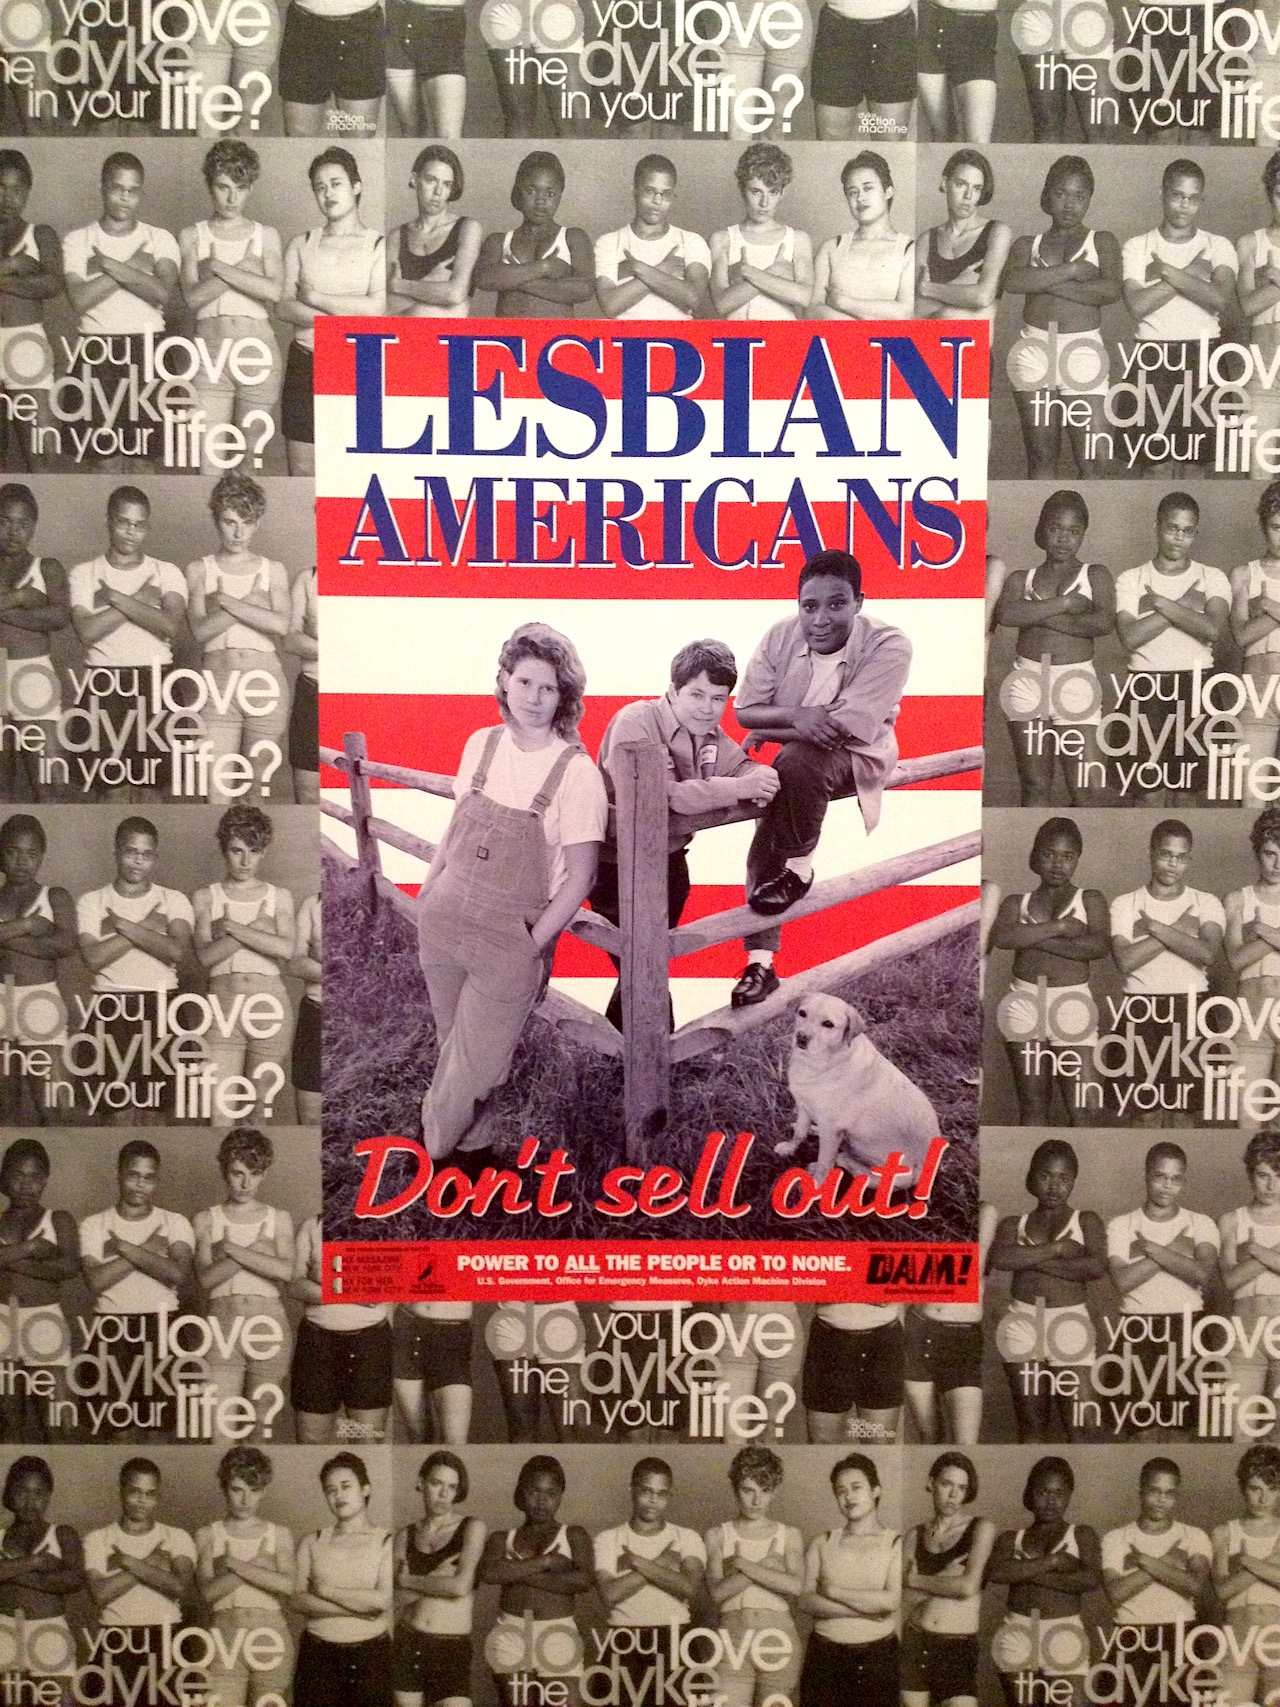 """Posters by Dyke Action Machine (Carrie Moyer and Sue Schaffner), """"Lesbian Americans: Dont Sell Out"""" (1998) and """"Do You Love the Dyke in Your Life?"""" (1993) (photo by Tiernan Morgan for Hyperallergic)"""